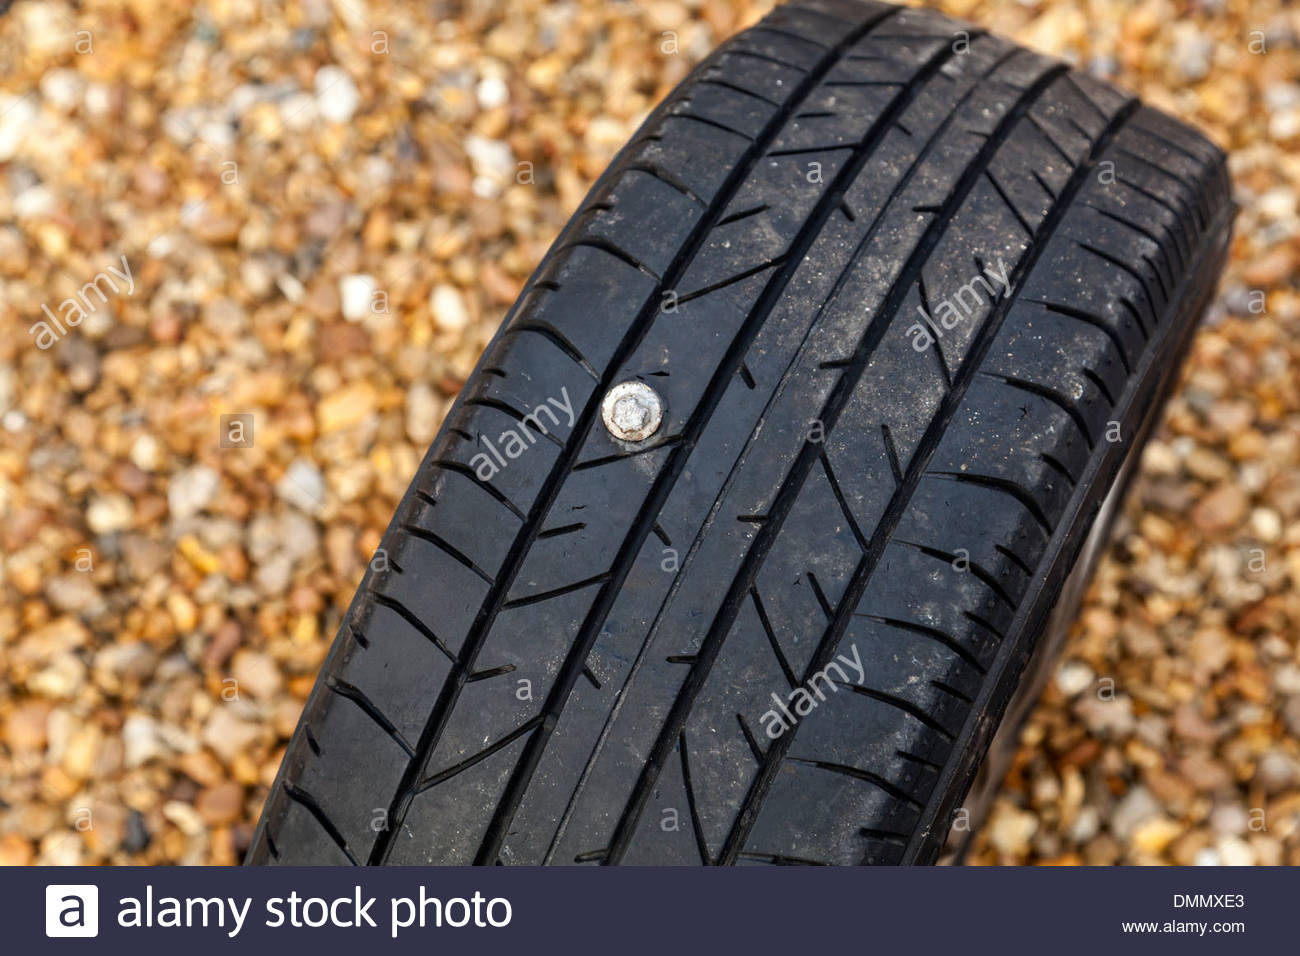 Tyre puncture - nail in tyre Stock Photo: 64384043 - Alamy